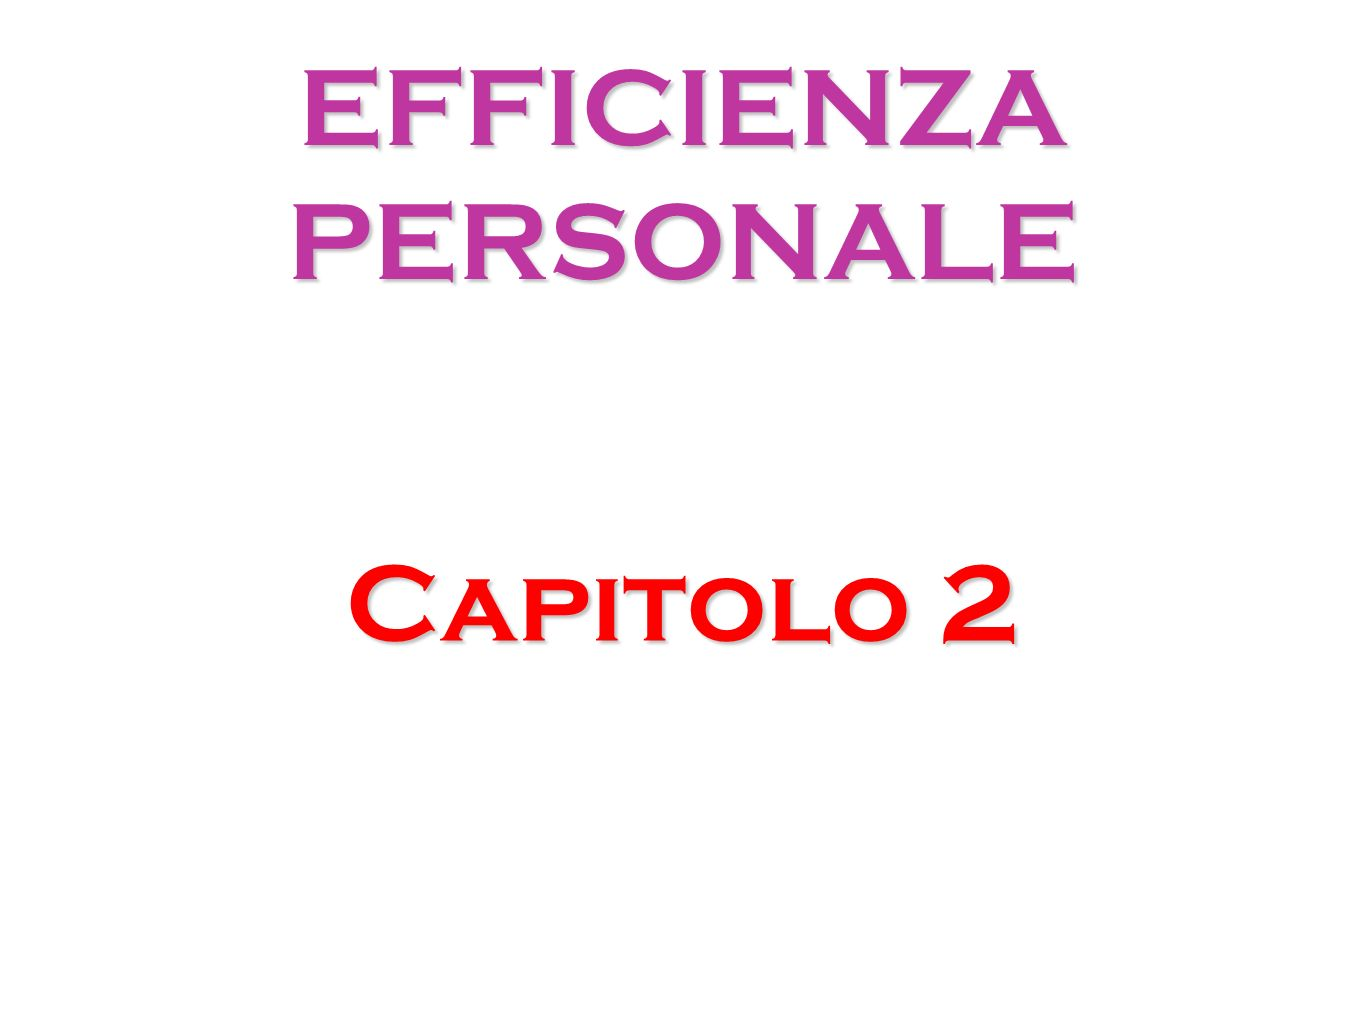 EFFICIENZA PERSONALE Capitolo 2